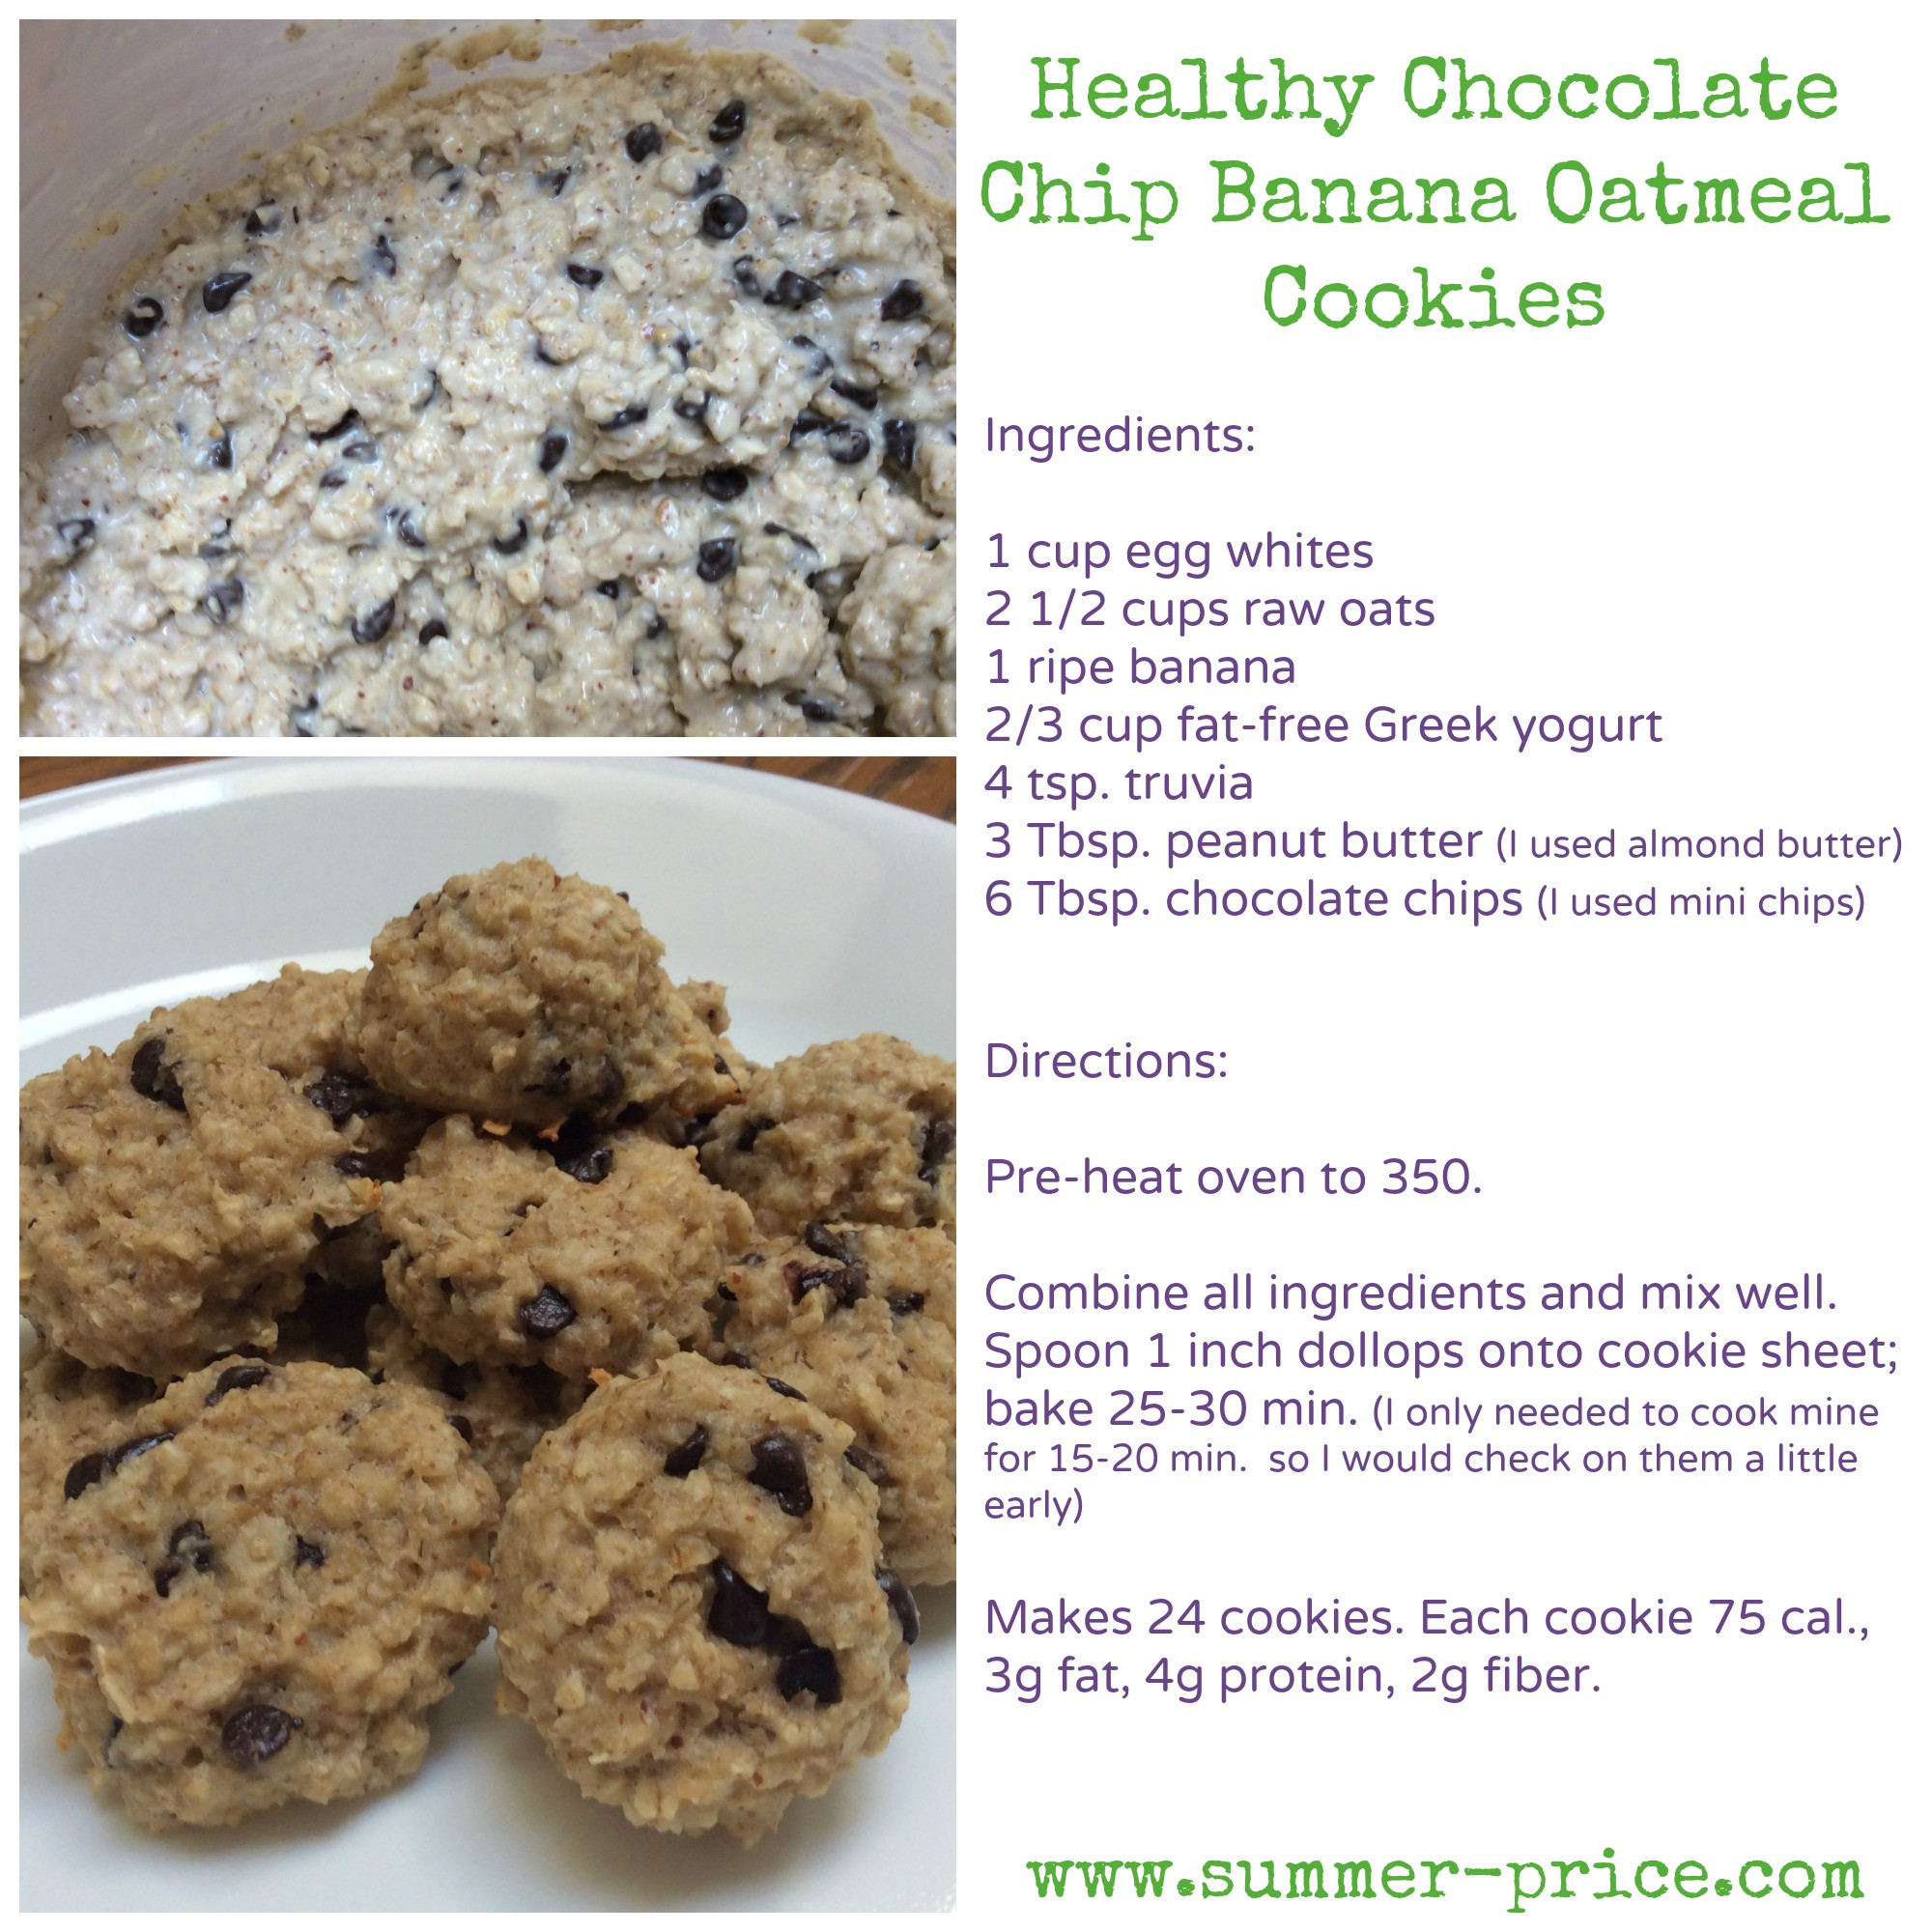 Healthy Banana Chocolate Chip Cookies  Healthy Chocolate Chip Banana Oatmeal Cookies Summer Price